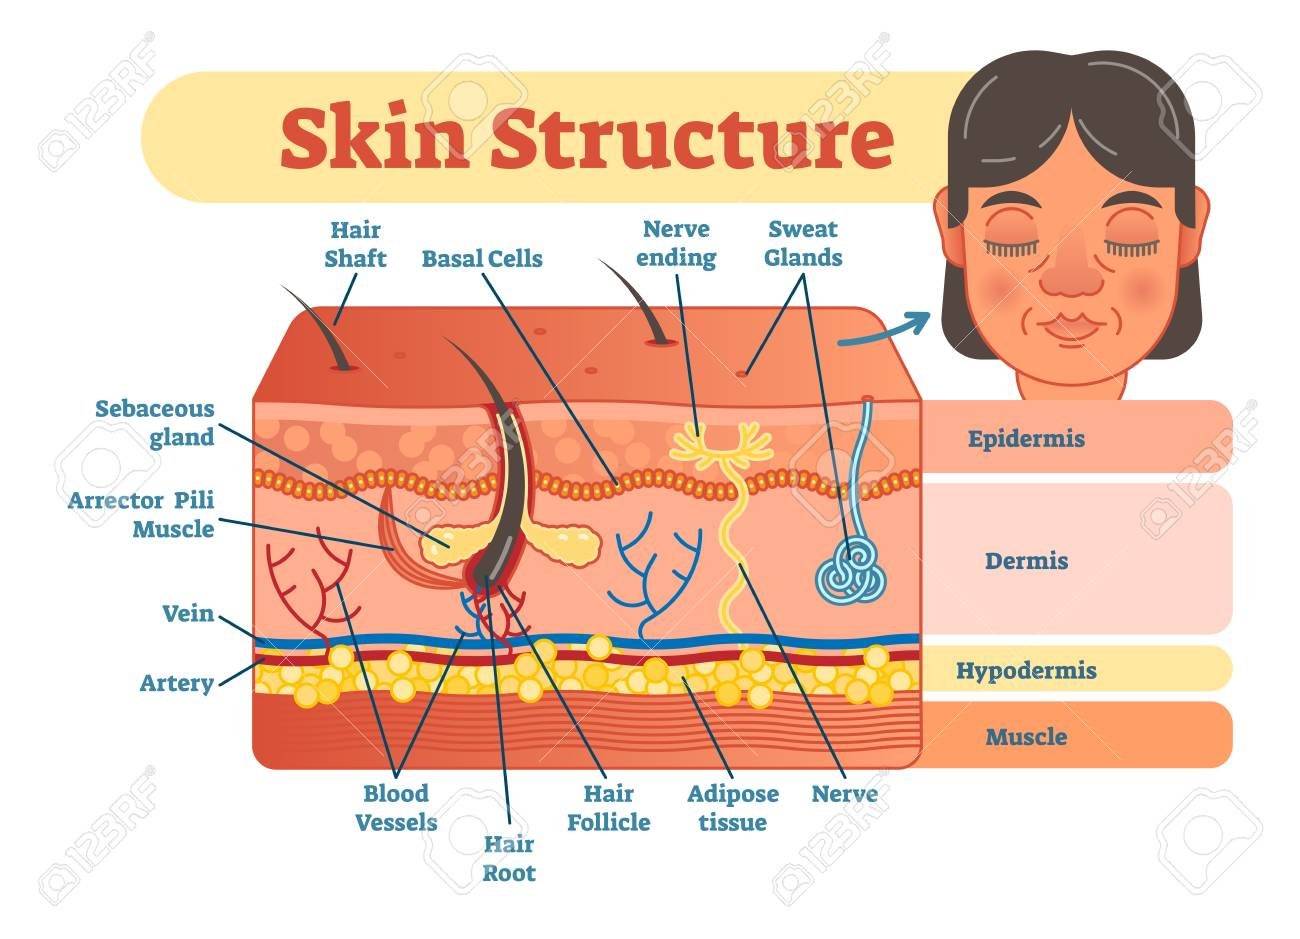 hight resolution of skin structure vector illustration diagram with skin layers and main elements educational medical dermatology information